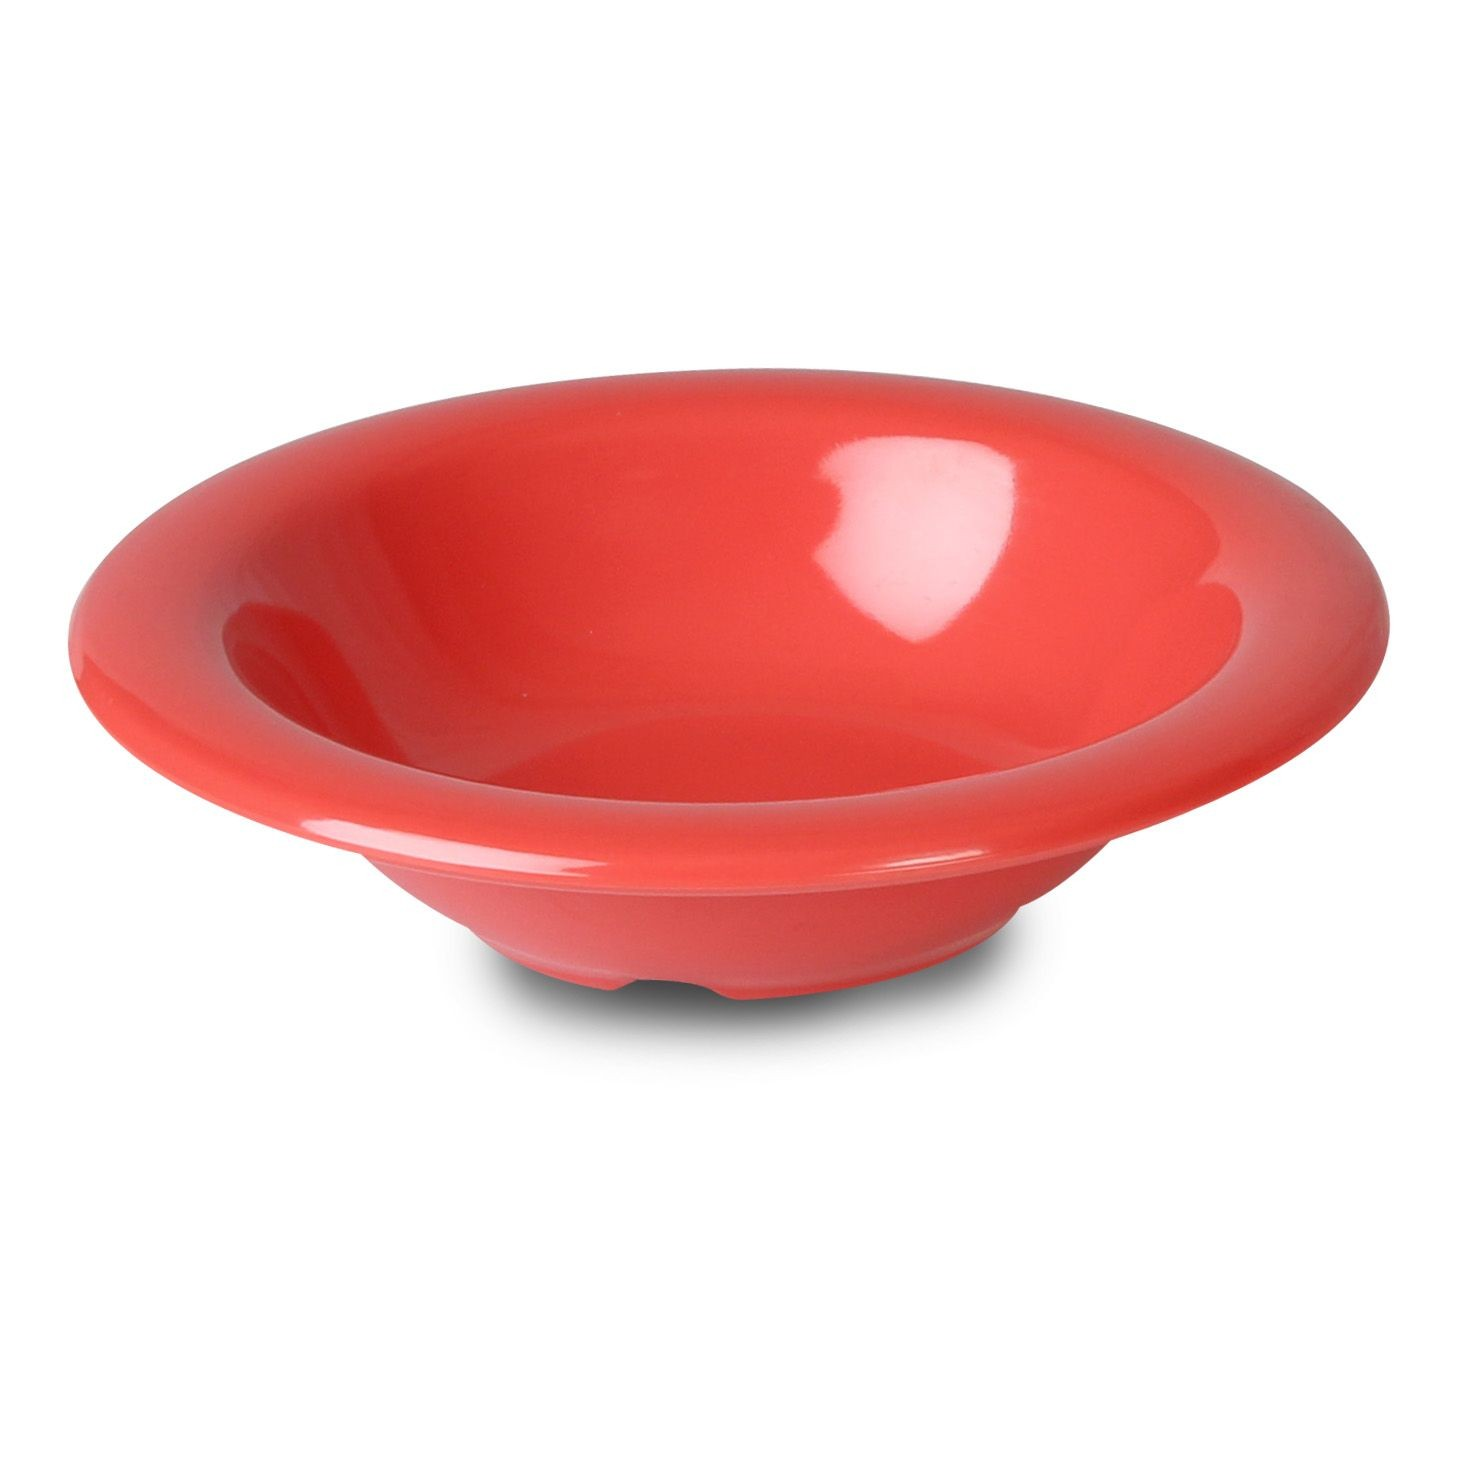 Thunder Group CR5608RD Red Salad Bowl 8 oz. - 1 doz